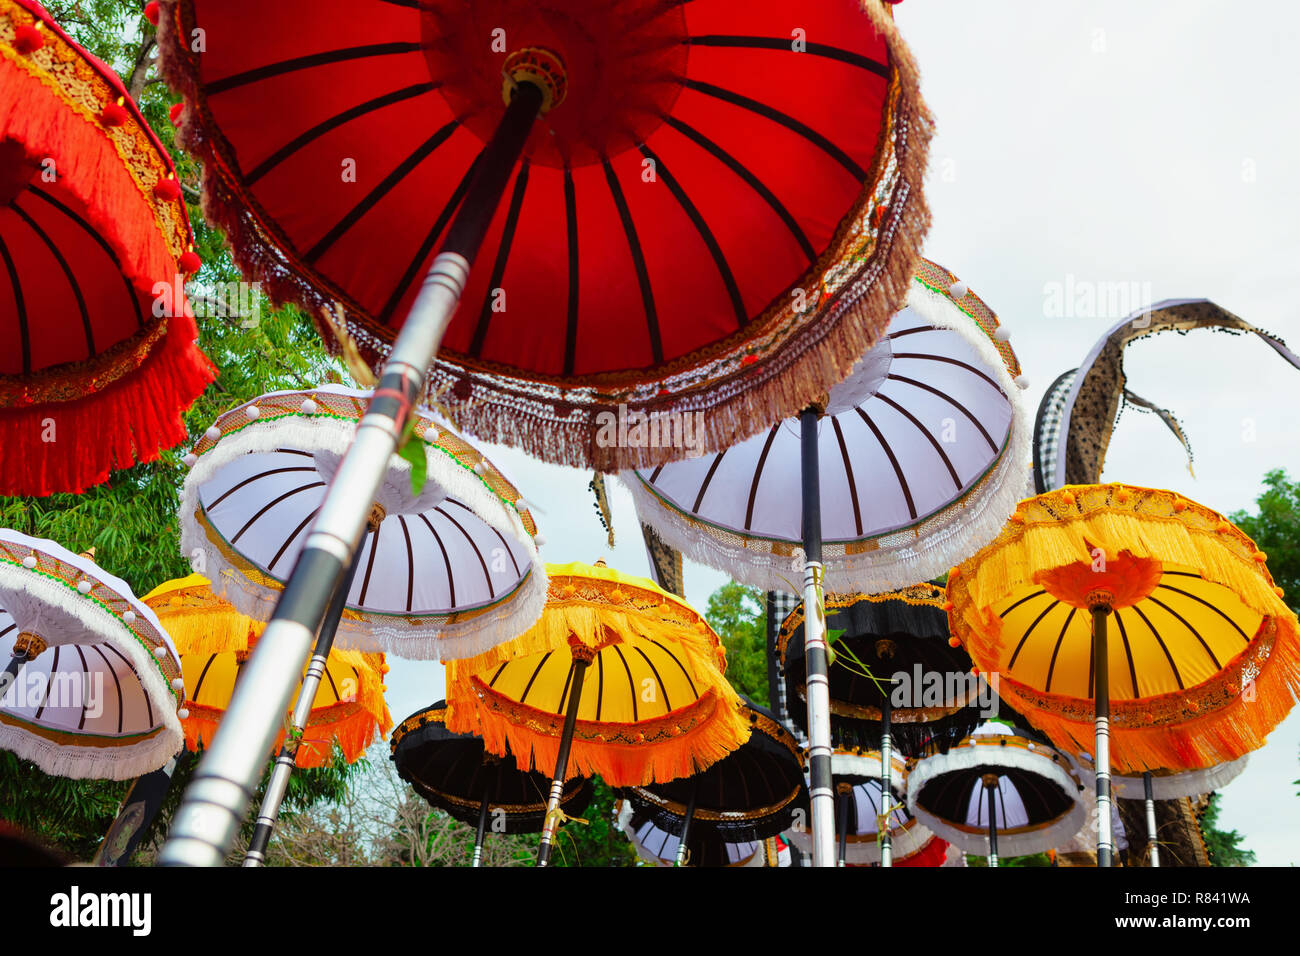 Group of beautiful Balinese flags and umbrellas at celebration ceremony in Hindu temple. Traditional design, arts festivals, culture of Bali island - Stock Image